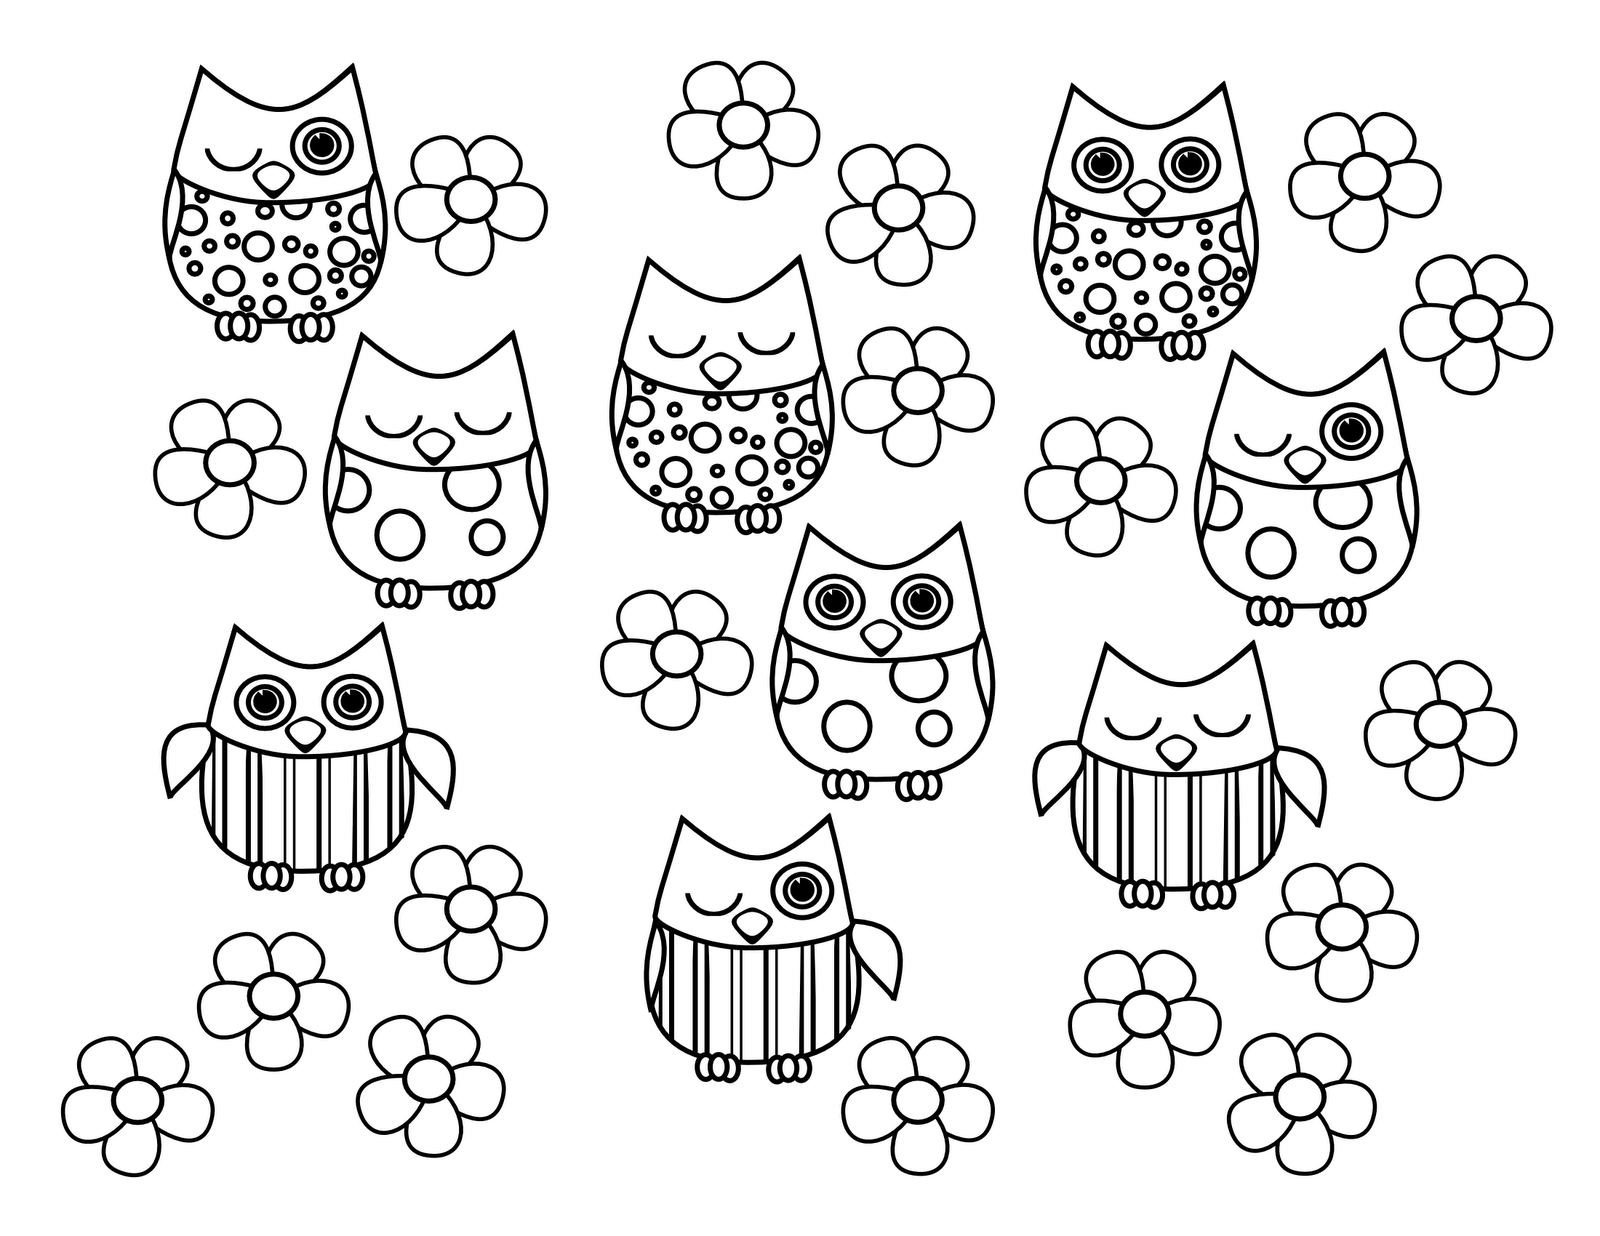 cute baby owl animals coloring pages | Owl Coloring Page Bird (10 Image) – Colorings.net